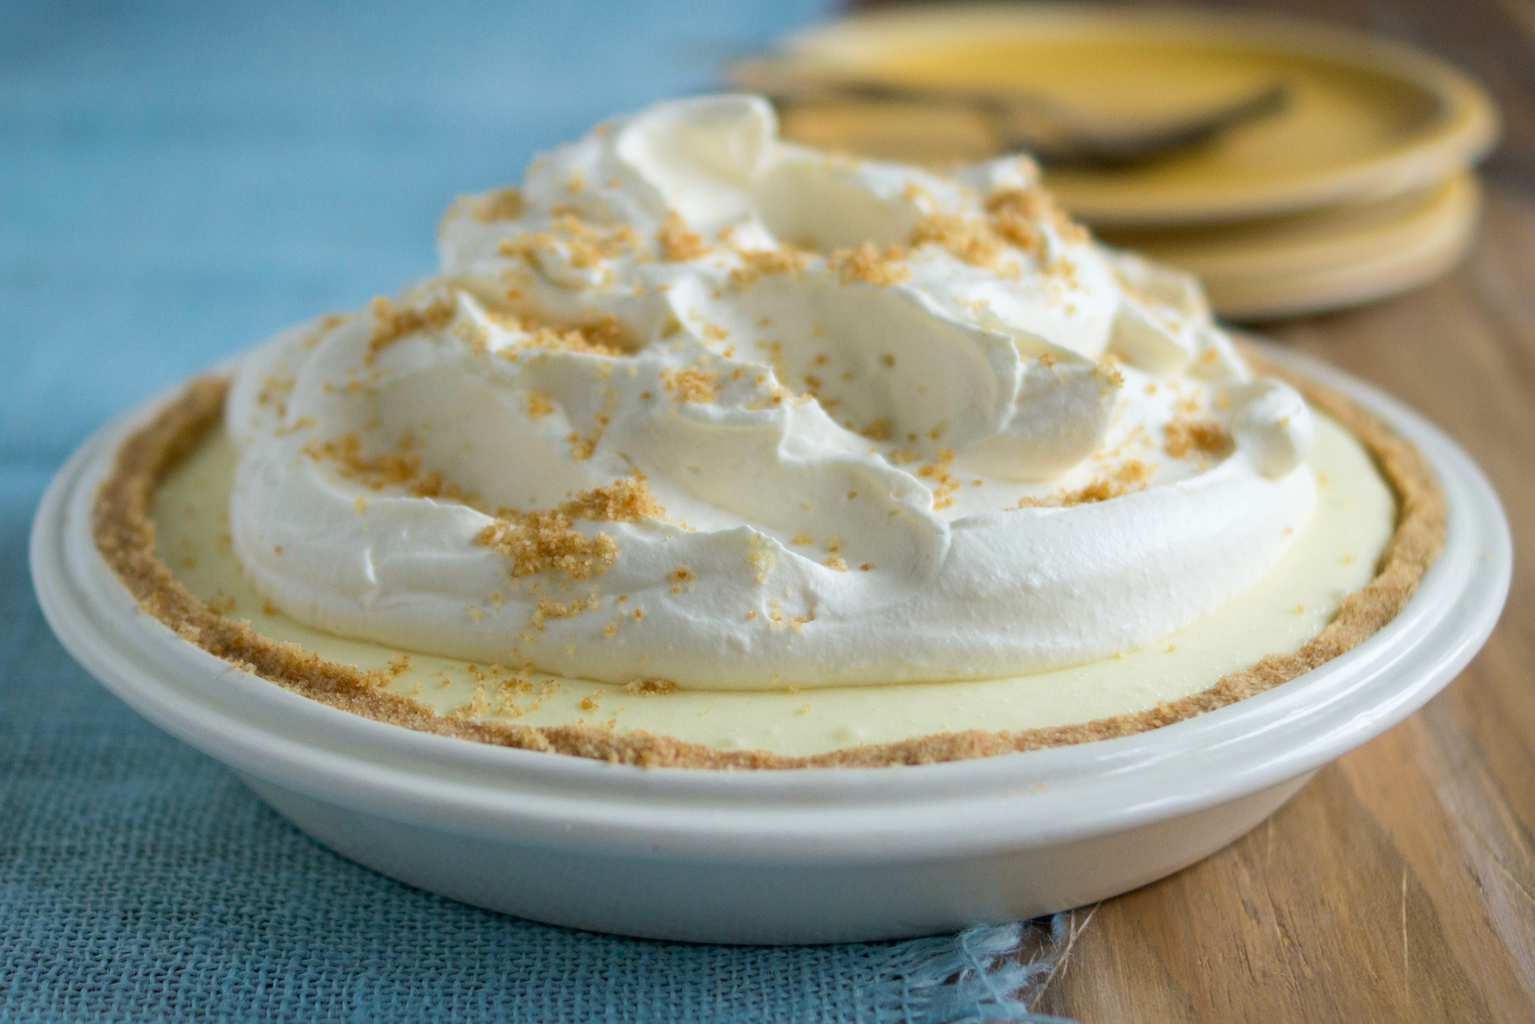 Delicious no-bake lemon icebox pie on blue placemat in white pie pan